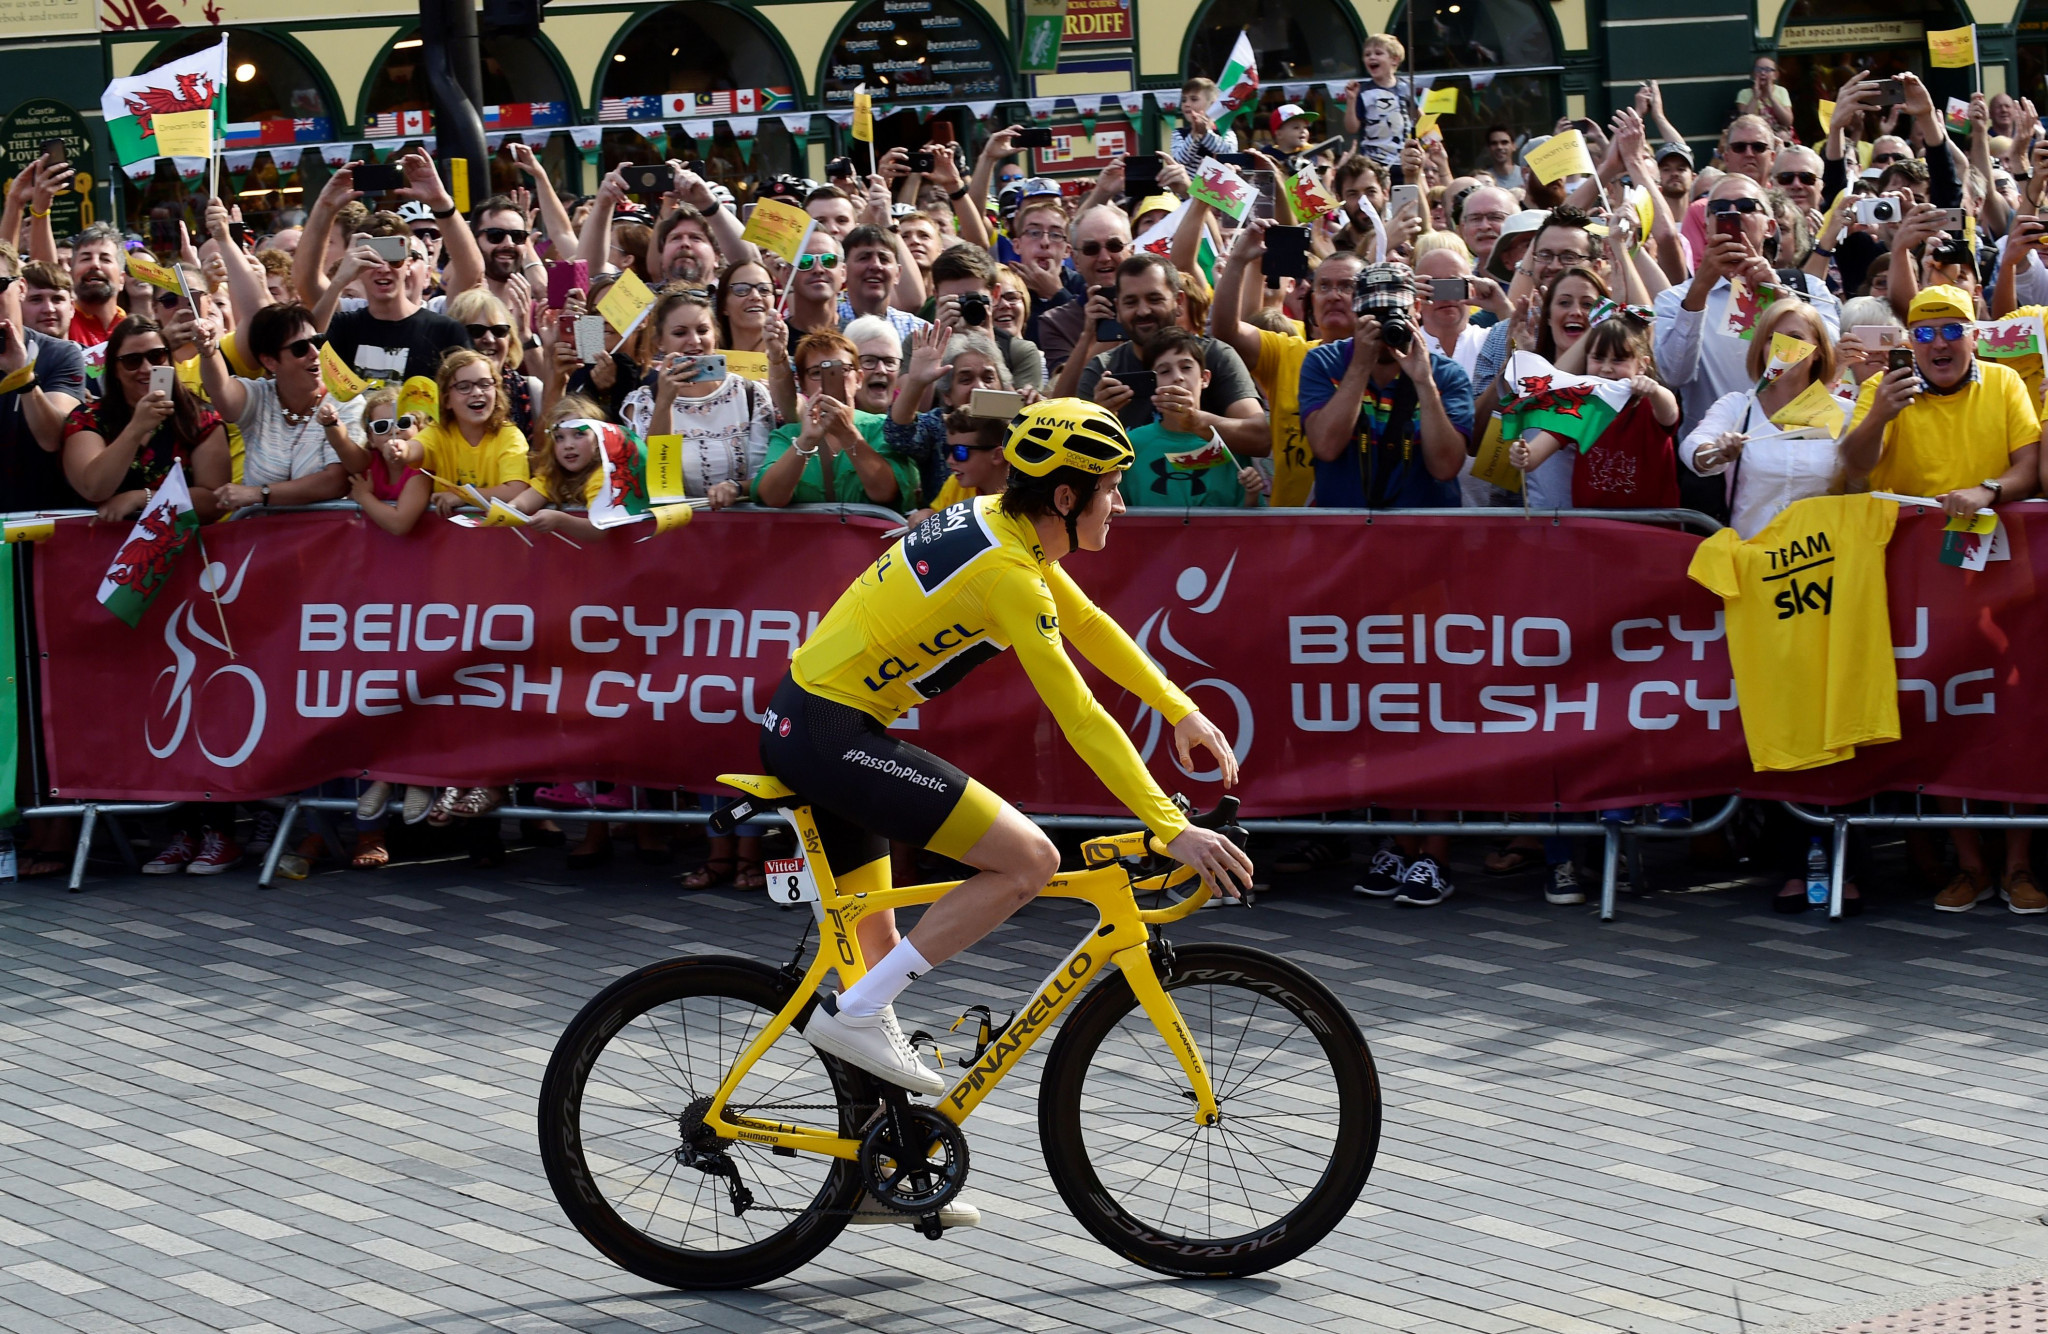 Team Sky's success included Geraint Thomas winning this year's Tour de France ©Getty Images